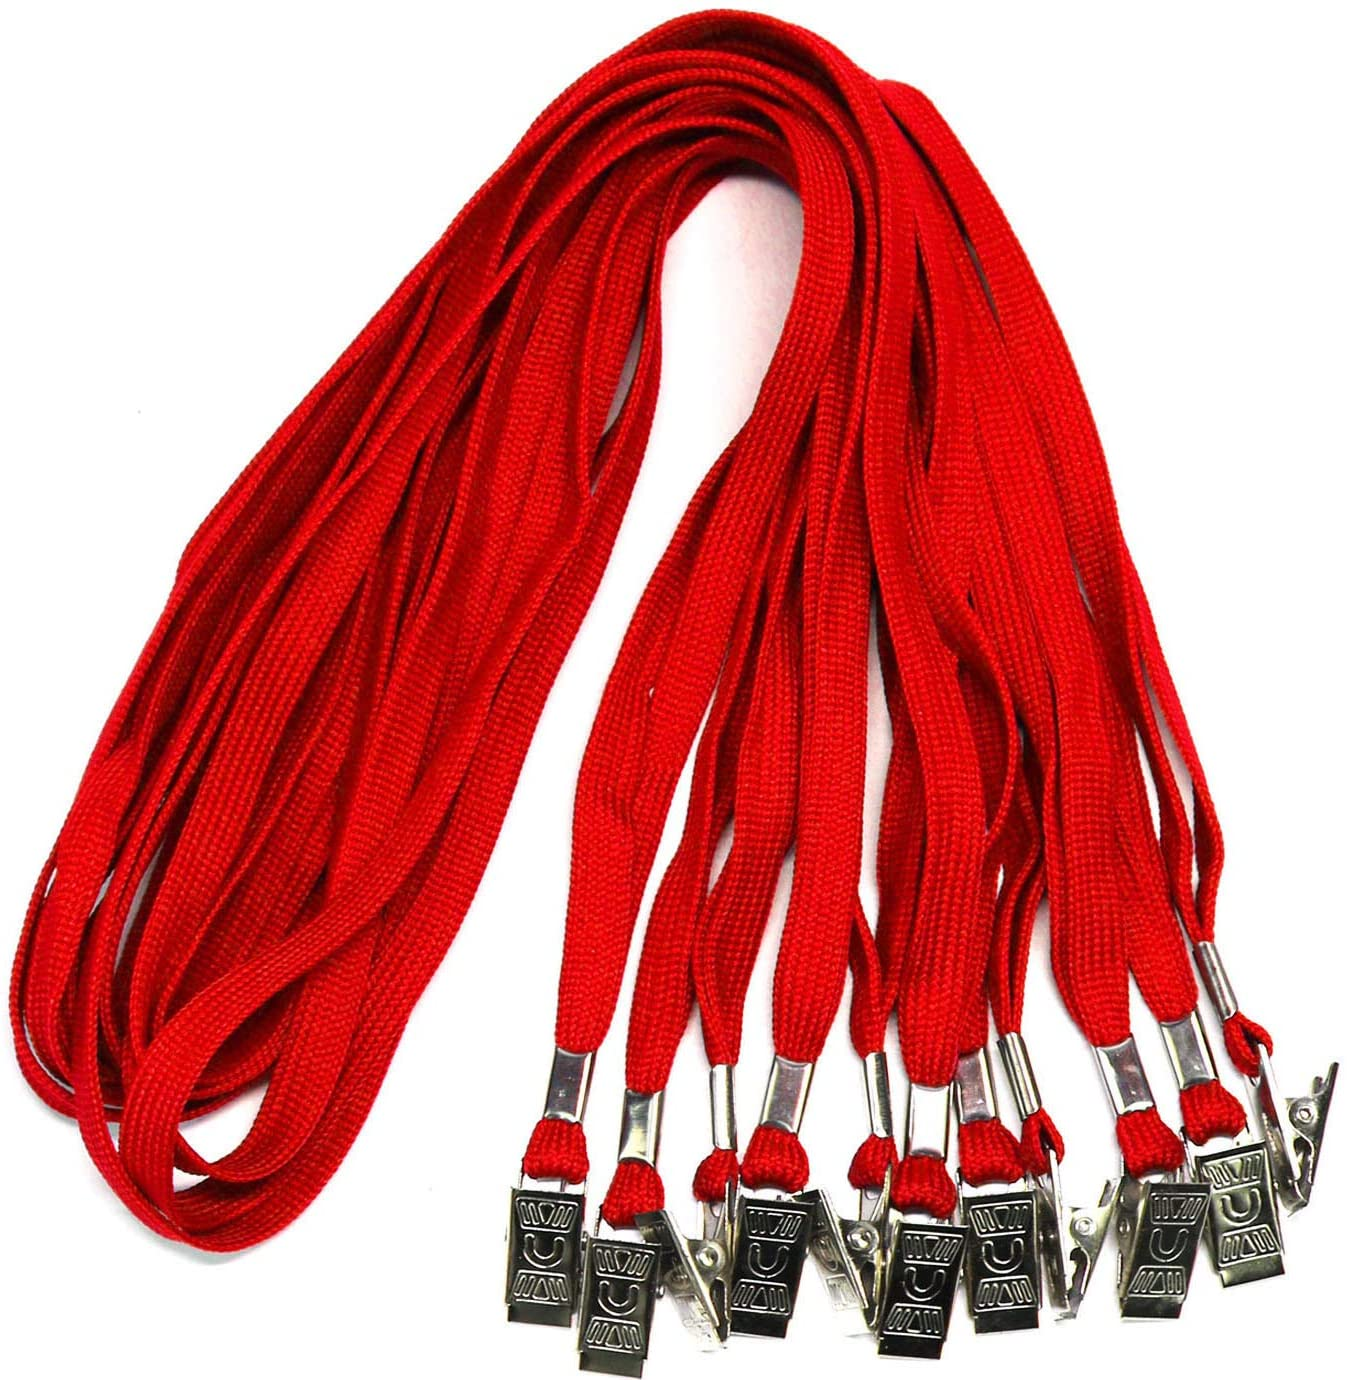 Badge Lanyards Neck Bulk Cruise Lanyards Lanyard with Clip for ID Card Name Tags Badge Holders (Red, 100 Pack)